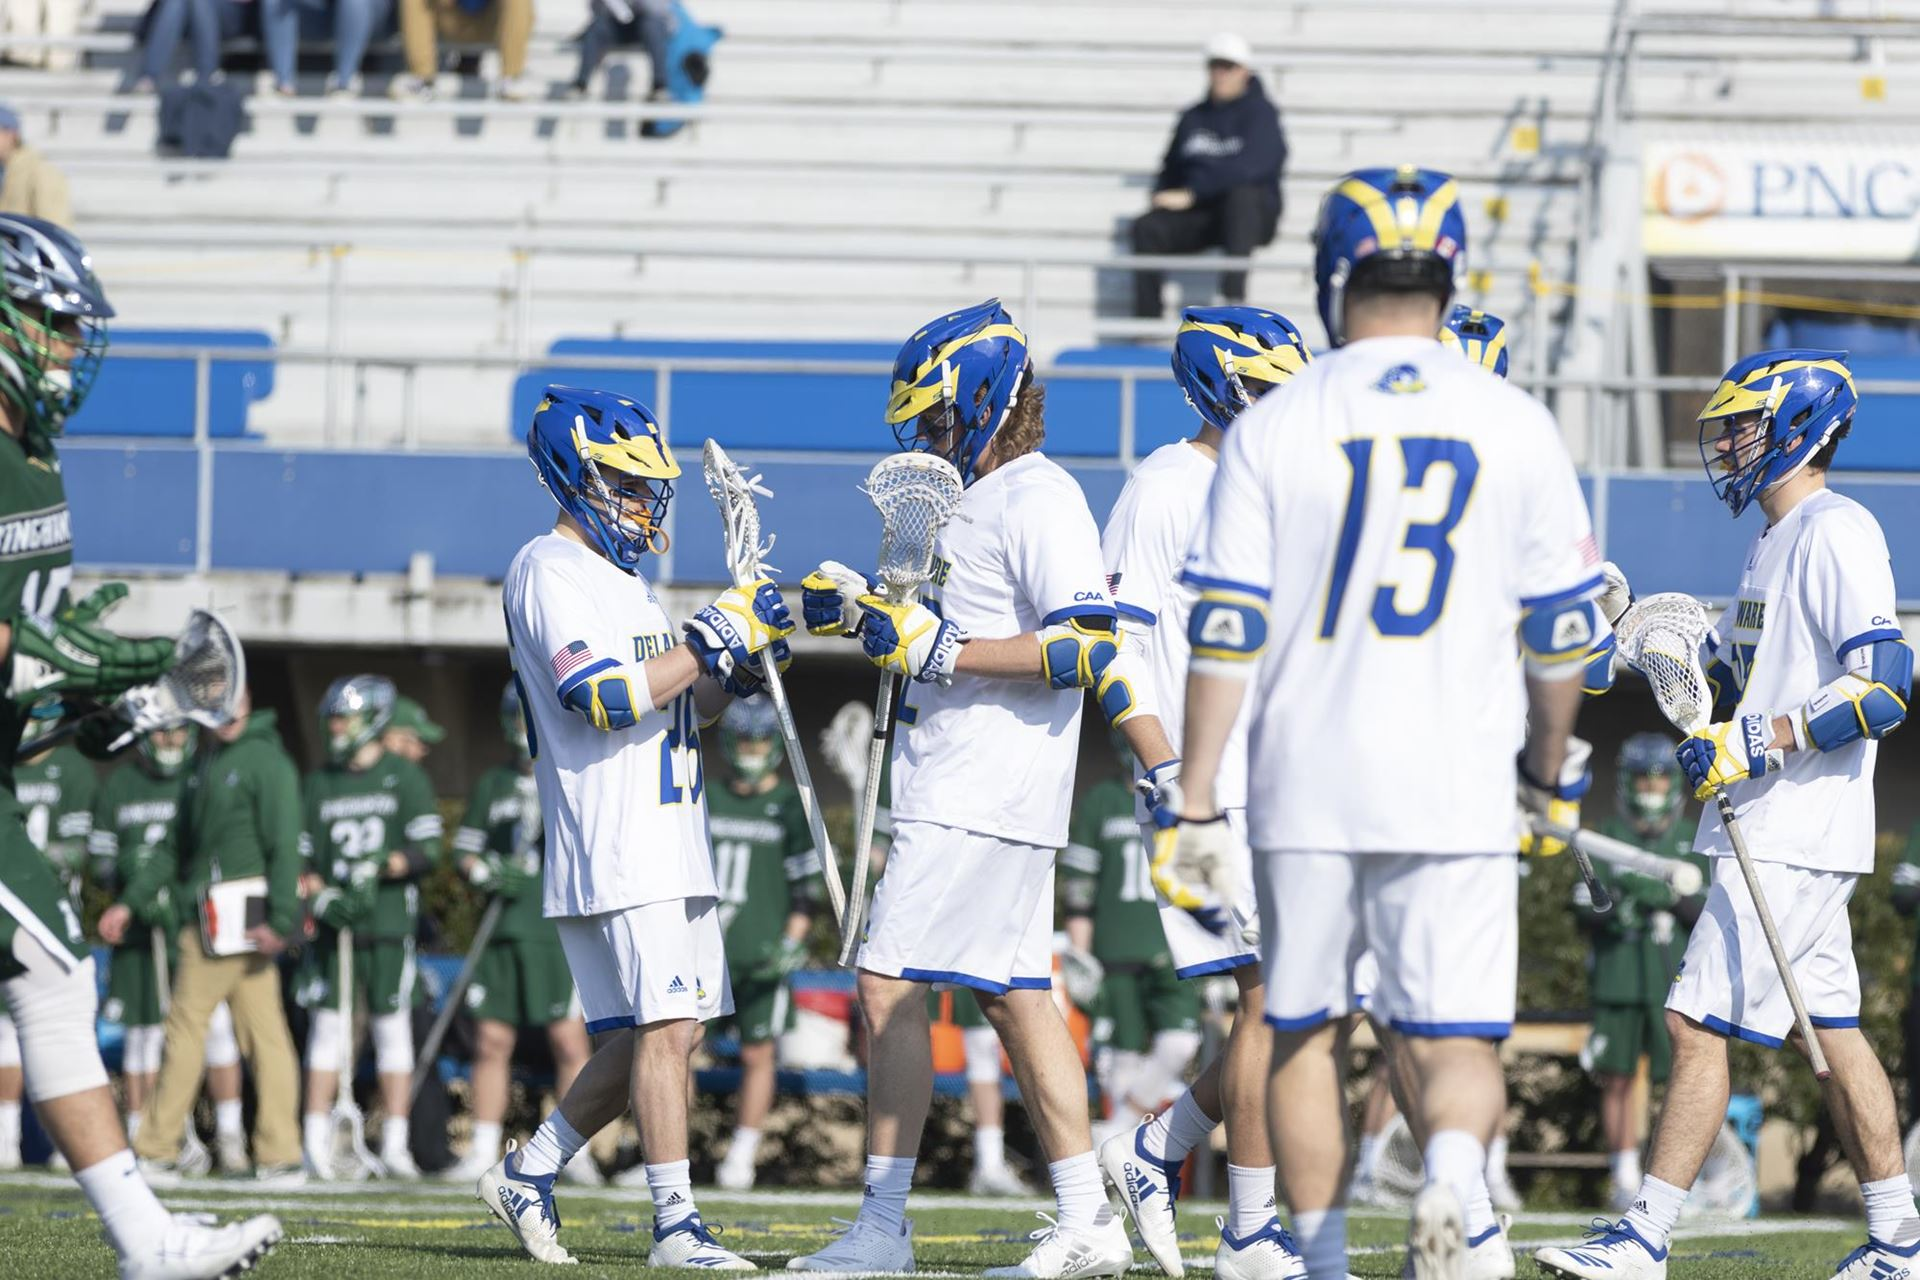 Men's Lacrosse ends a memorable season against Towson